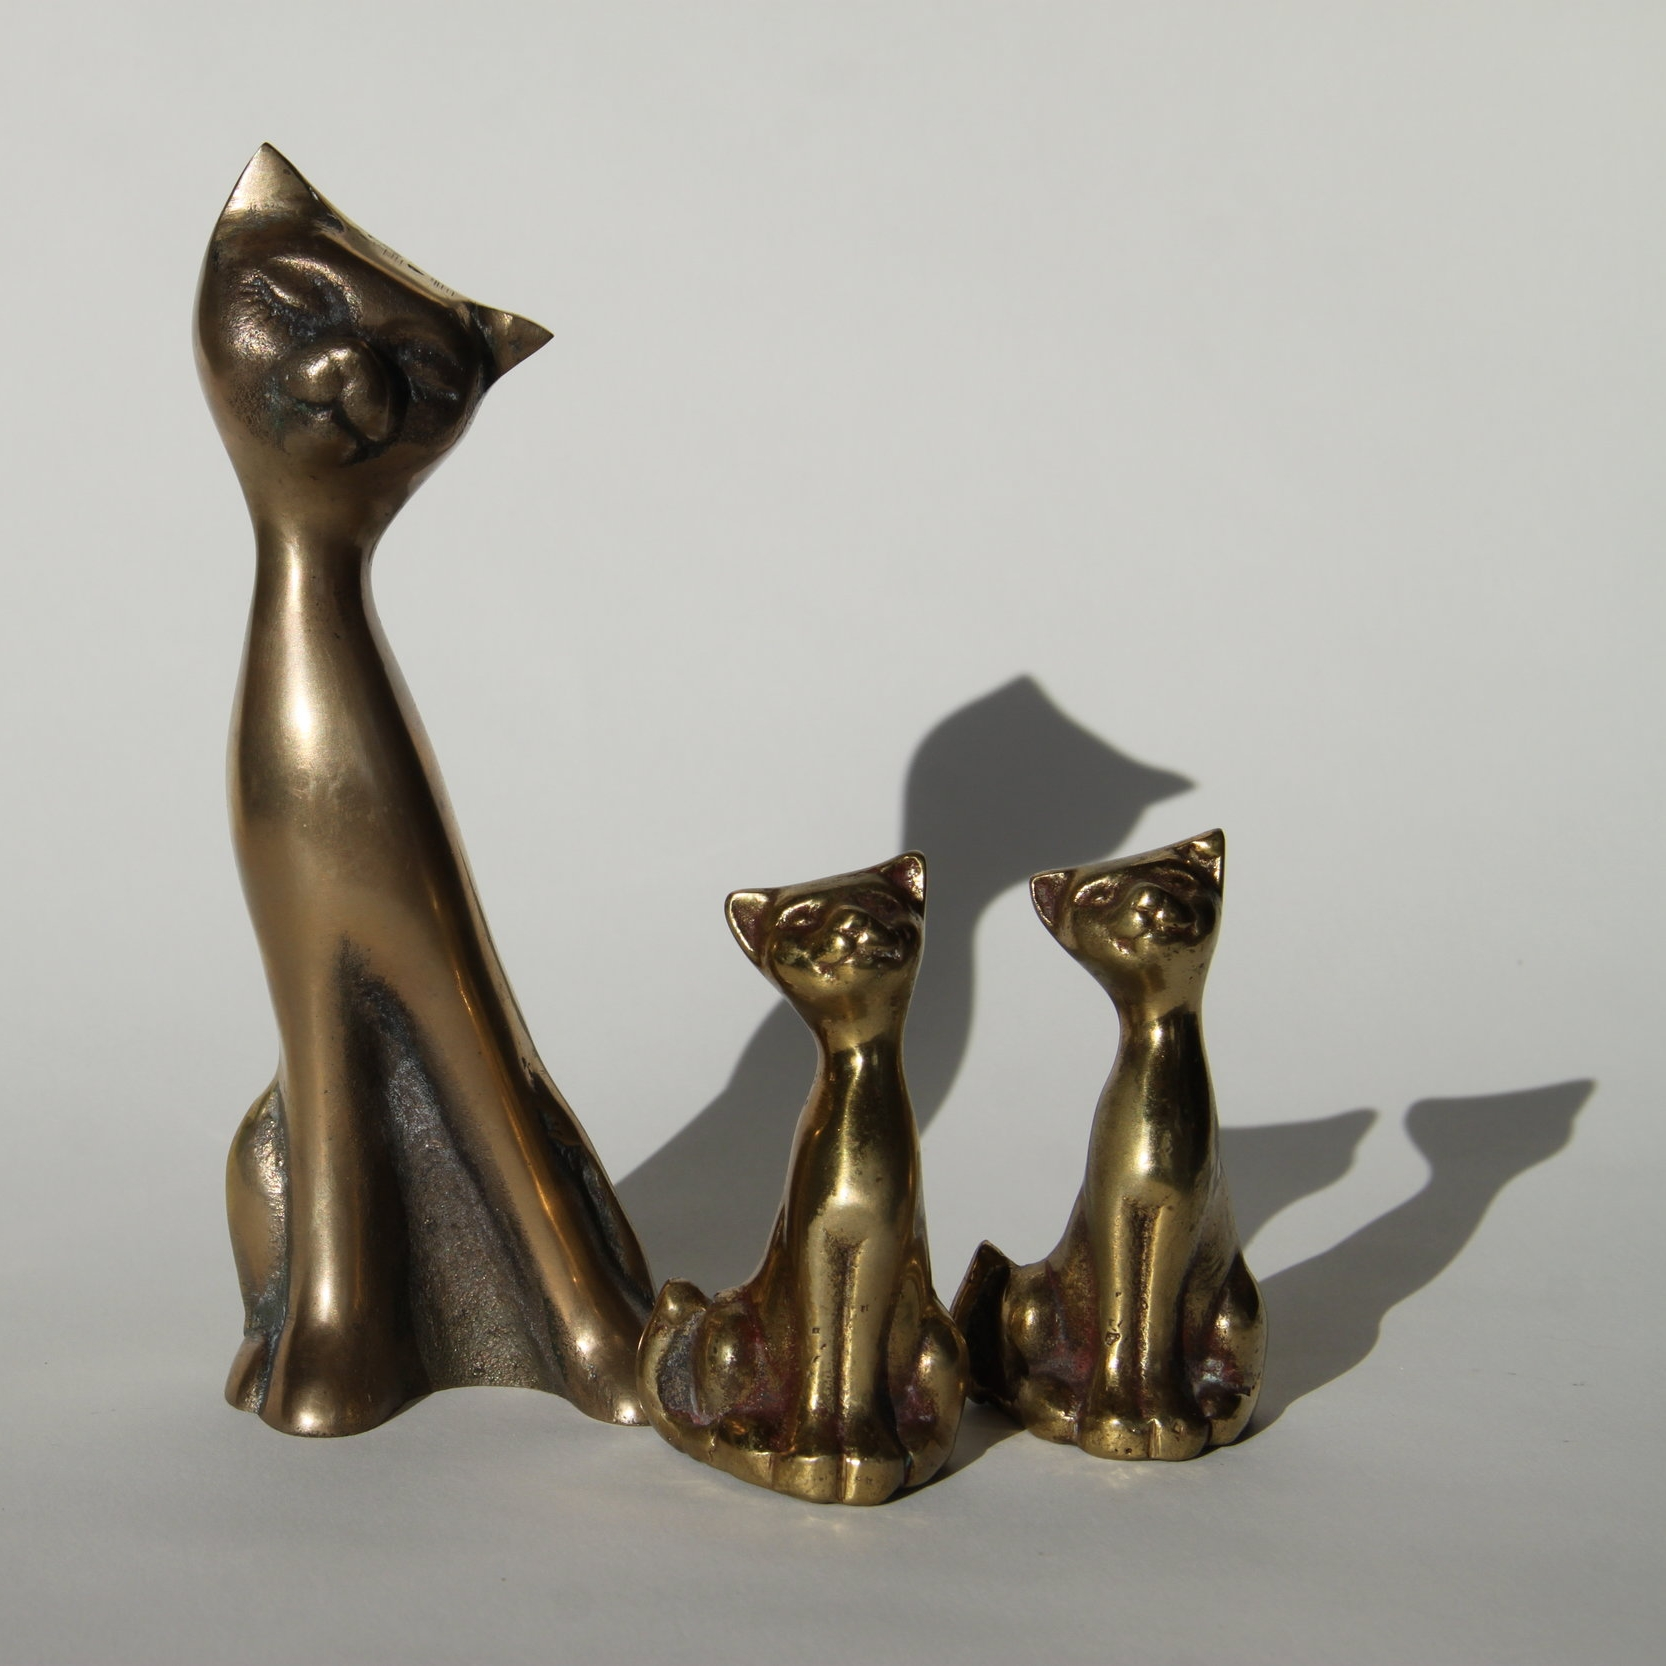 Brass kitties that belonged to my mom. They spark joy.